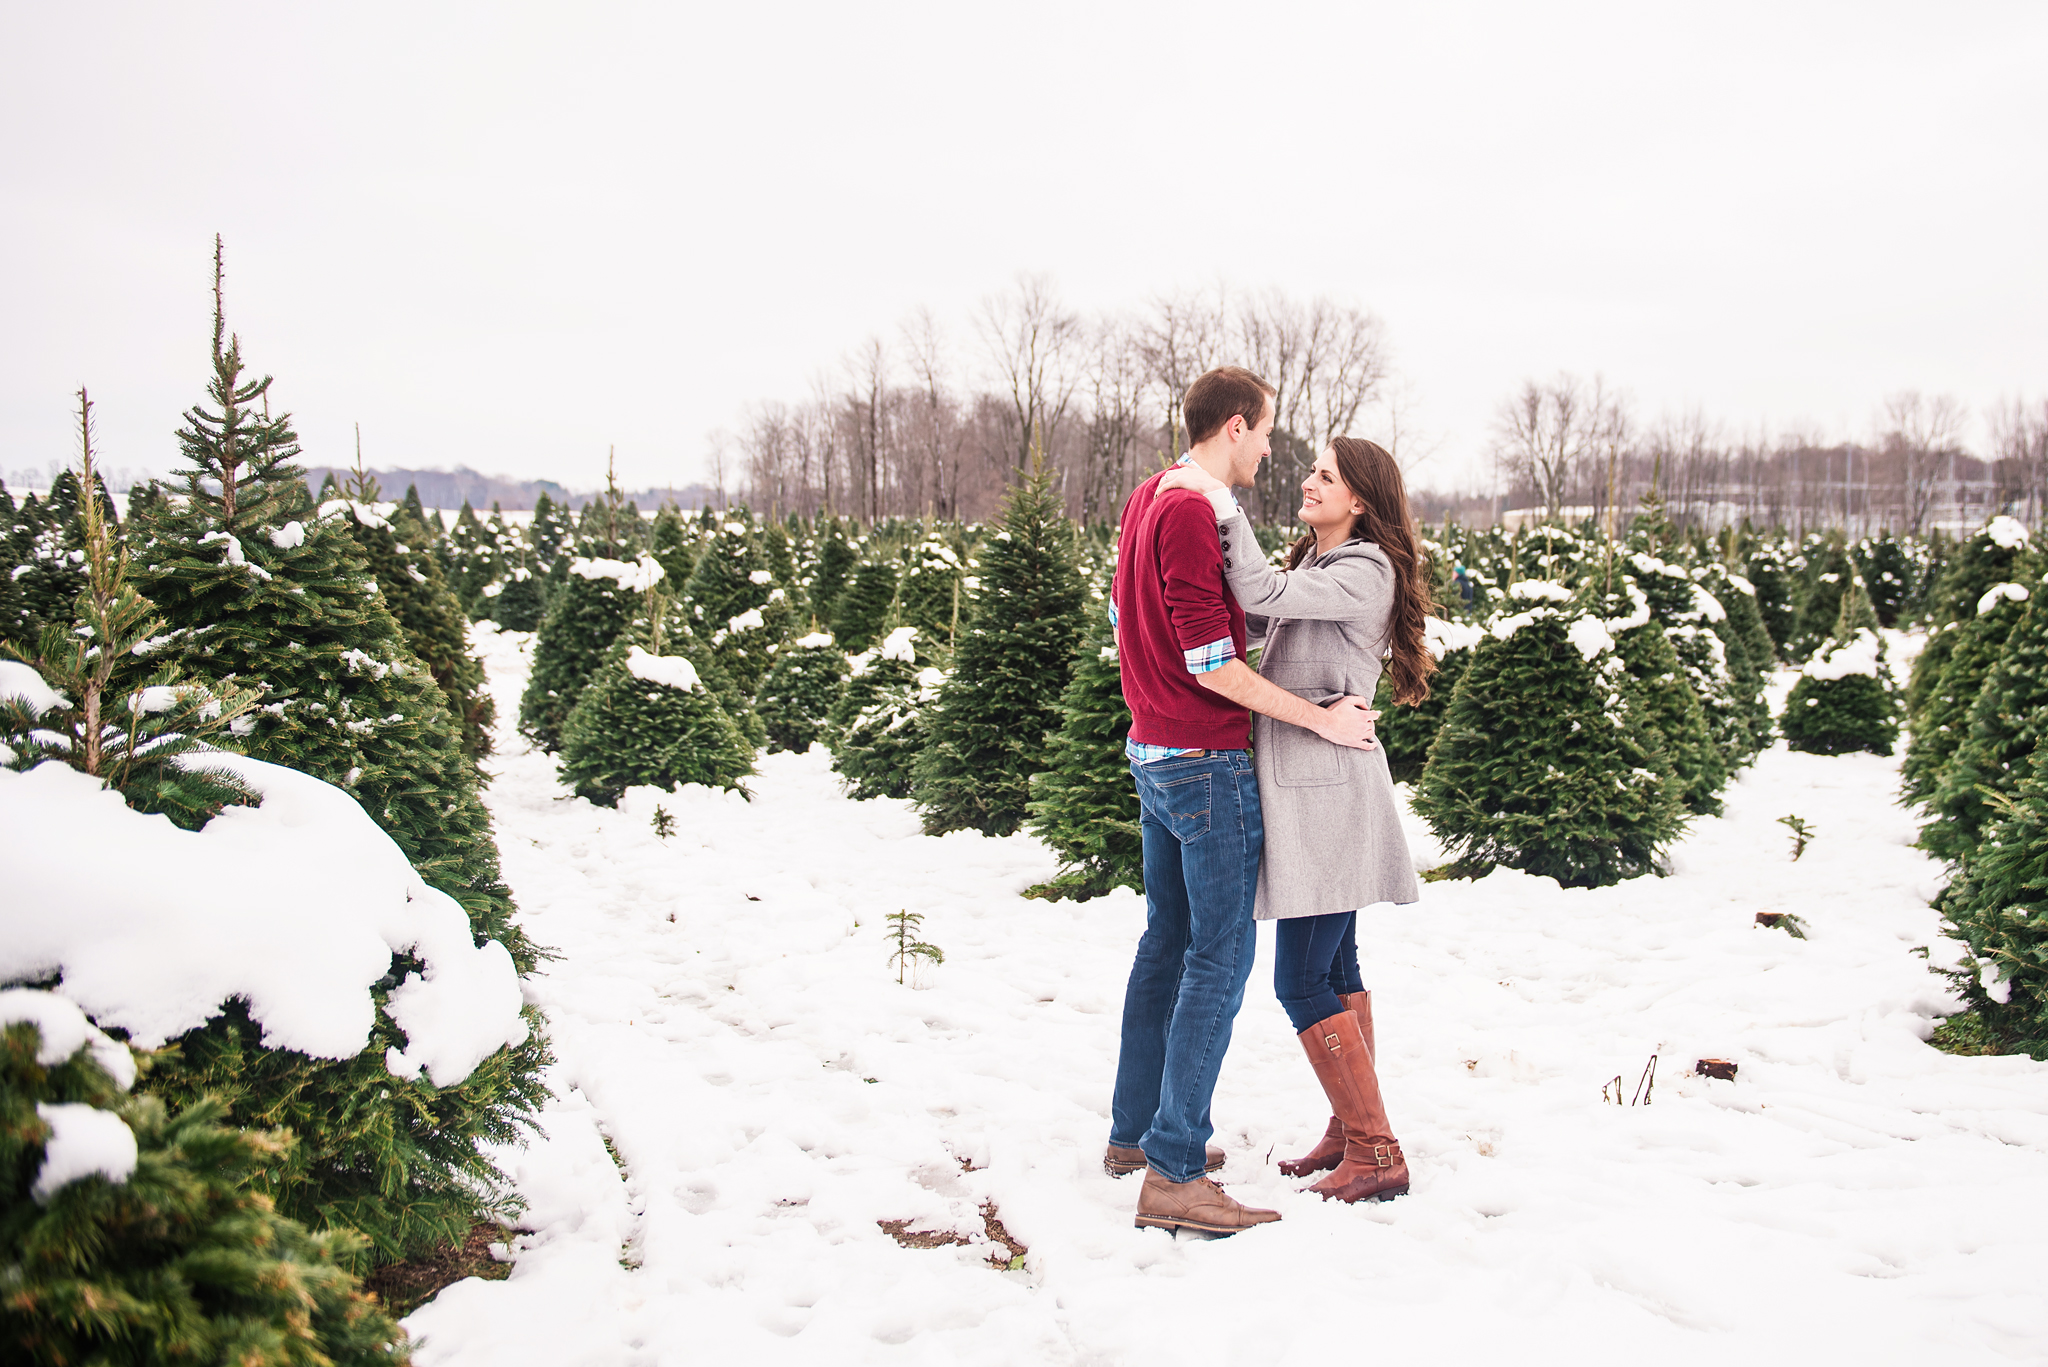 Woody_Acres_Rochester_Engagement_Session_JILL_STUDIO_Rochester_NY_Photographer_152808.jpg